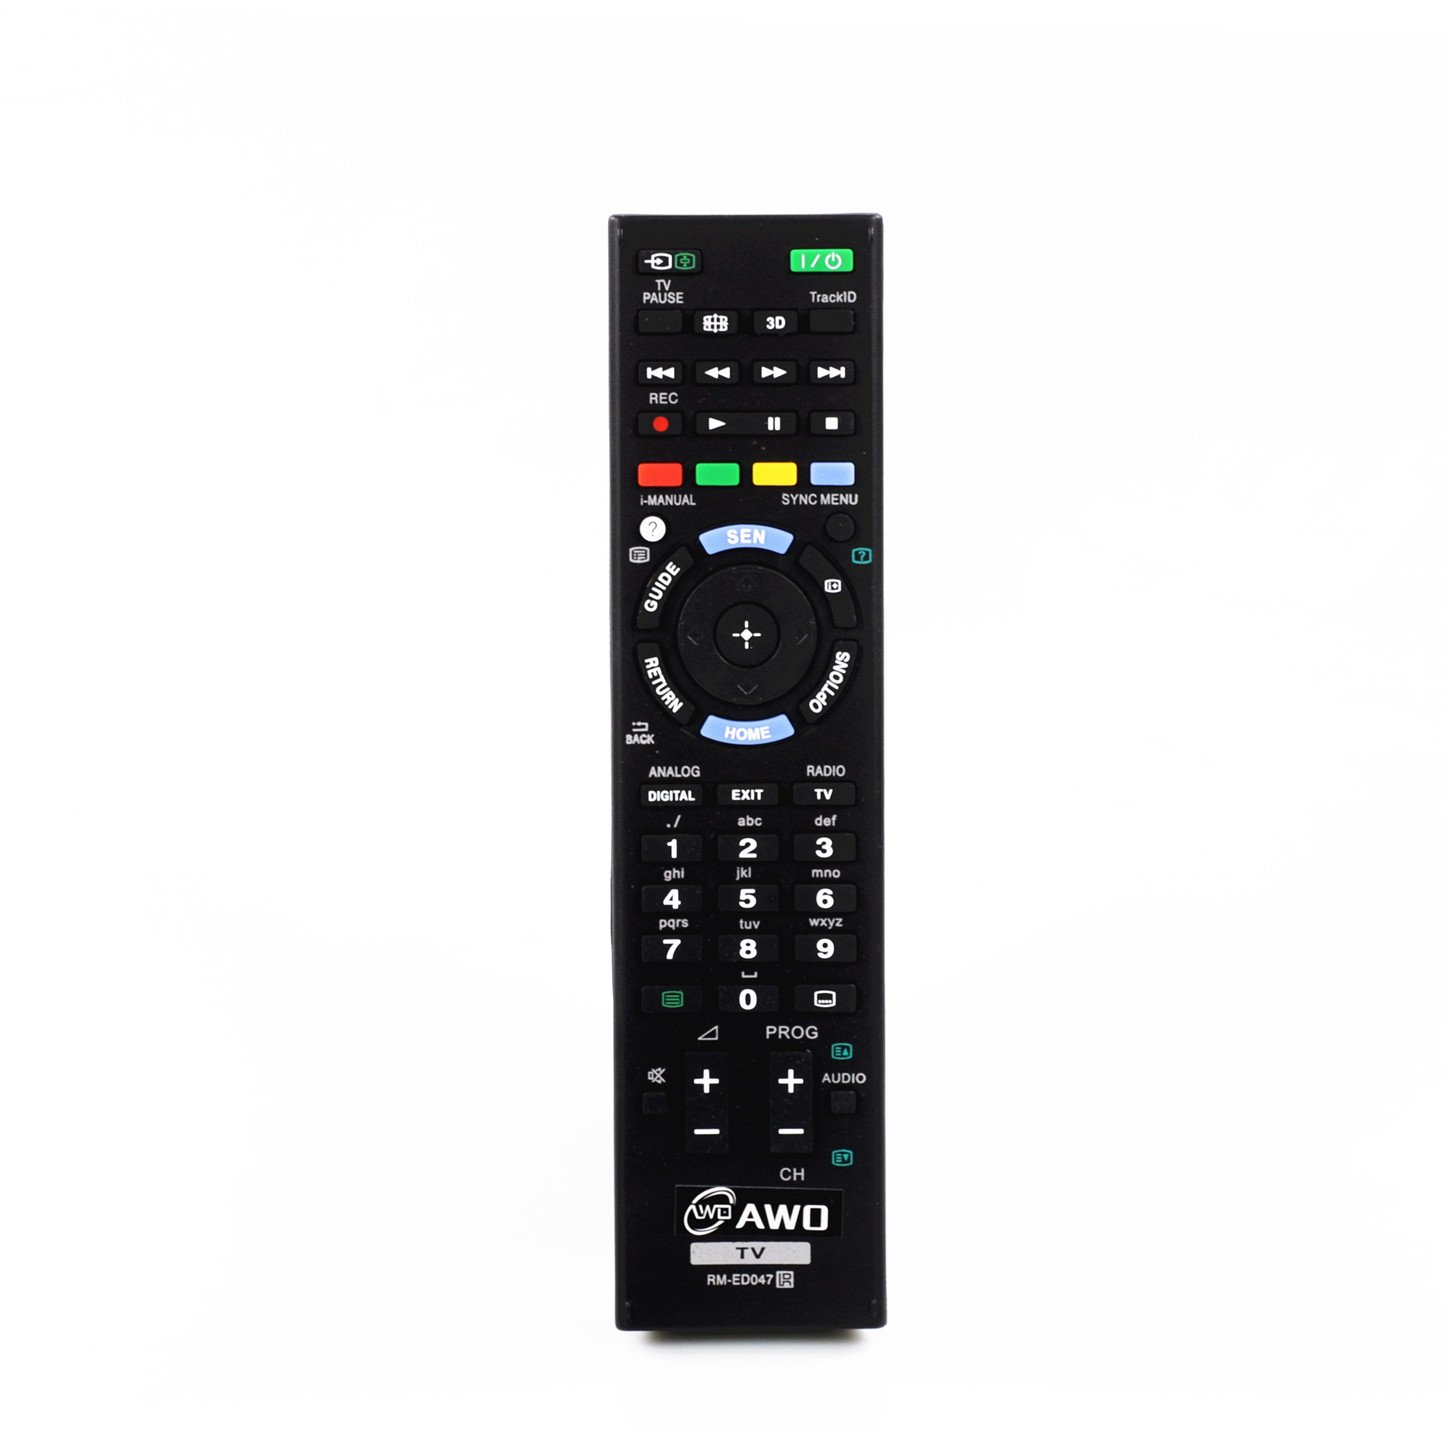 AWO RM-ED047 New Replacement TV Remote Control Fit For Bravia SONY KDL-22EX553 KDL-26EX553 KDL-32EX653 KDL-40EX650 KDL-40EX653 KDL-40EX655 KDL-46EX650 KDL-46EX653 KDL-46EX655